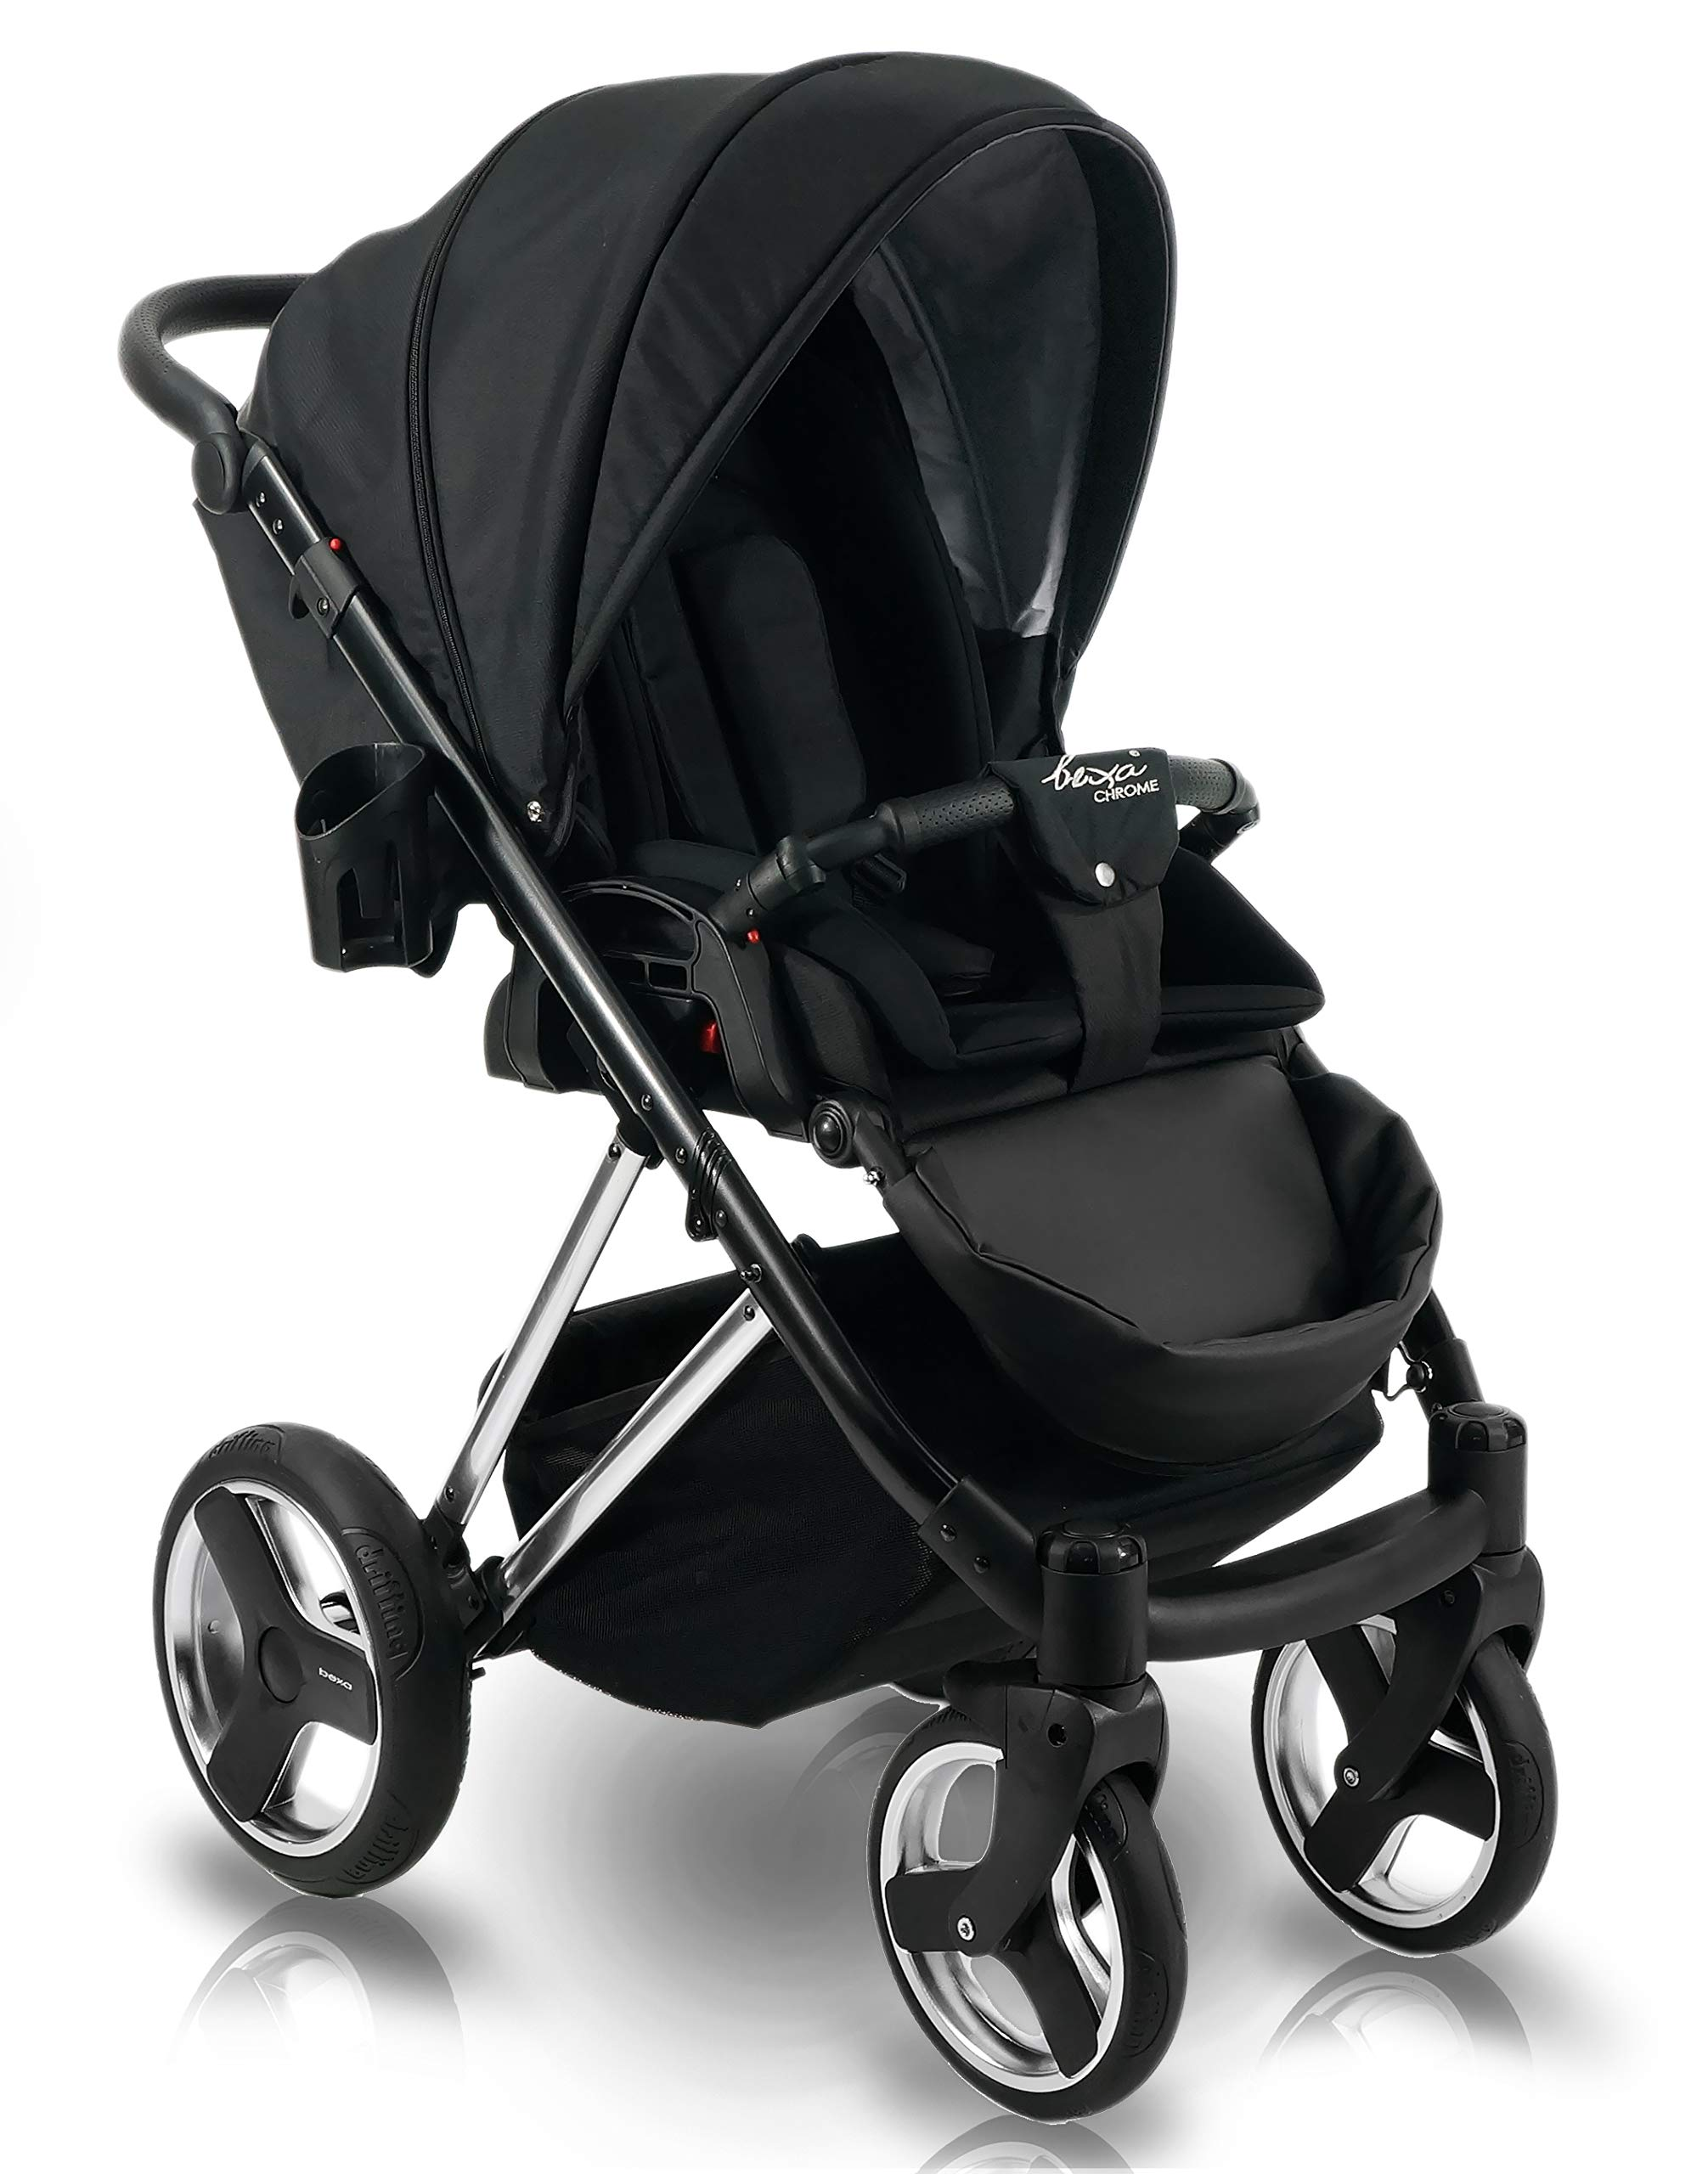 SaintBaby Stroller Buggy Baby seat Car seat Next II Gold Chrome Gold N1 4in1 with Isofix SaintBaby If you want the black frame instead of the gold frame, please inform us after the purchase. 3in1 or 2in1 Selectable. At 3in1 you will also receive the car seat (baby seat). Of course you get the baby tub (classic pram) as well as the buggy attachment (sports seat) no matter if 2in1 or 3in1. The car naturally complies with the EU safety standard EN1888. During production and before shipment, each wagon is carefully inspected so that you can be sure you have one of the best wagons. Saintbaby stands for all-in-one carefree packages, so you will also receive a diaper bag in the same colour as the car as well as rain and insect protection free of charge. With all the colours of this pram you will find the pram of your dreams. 5